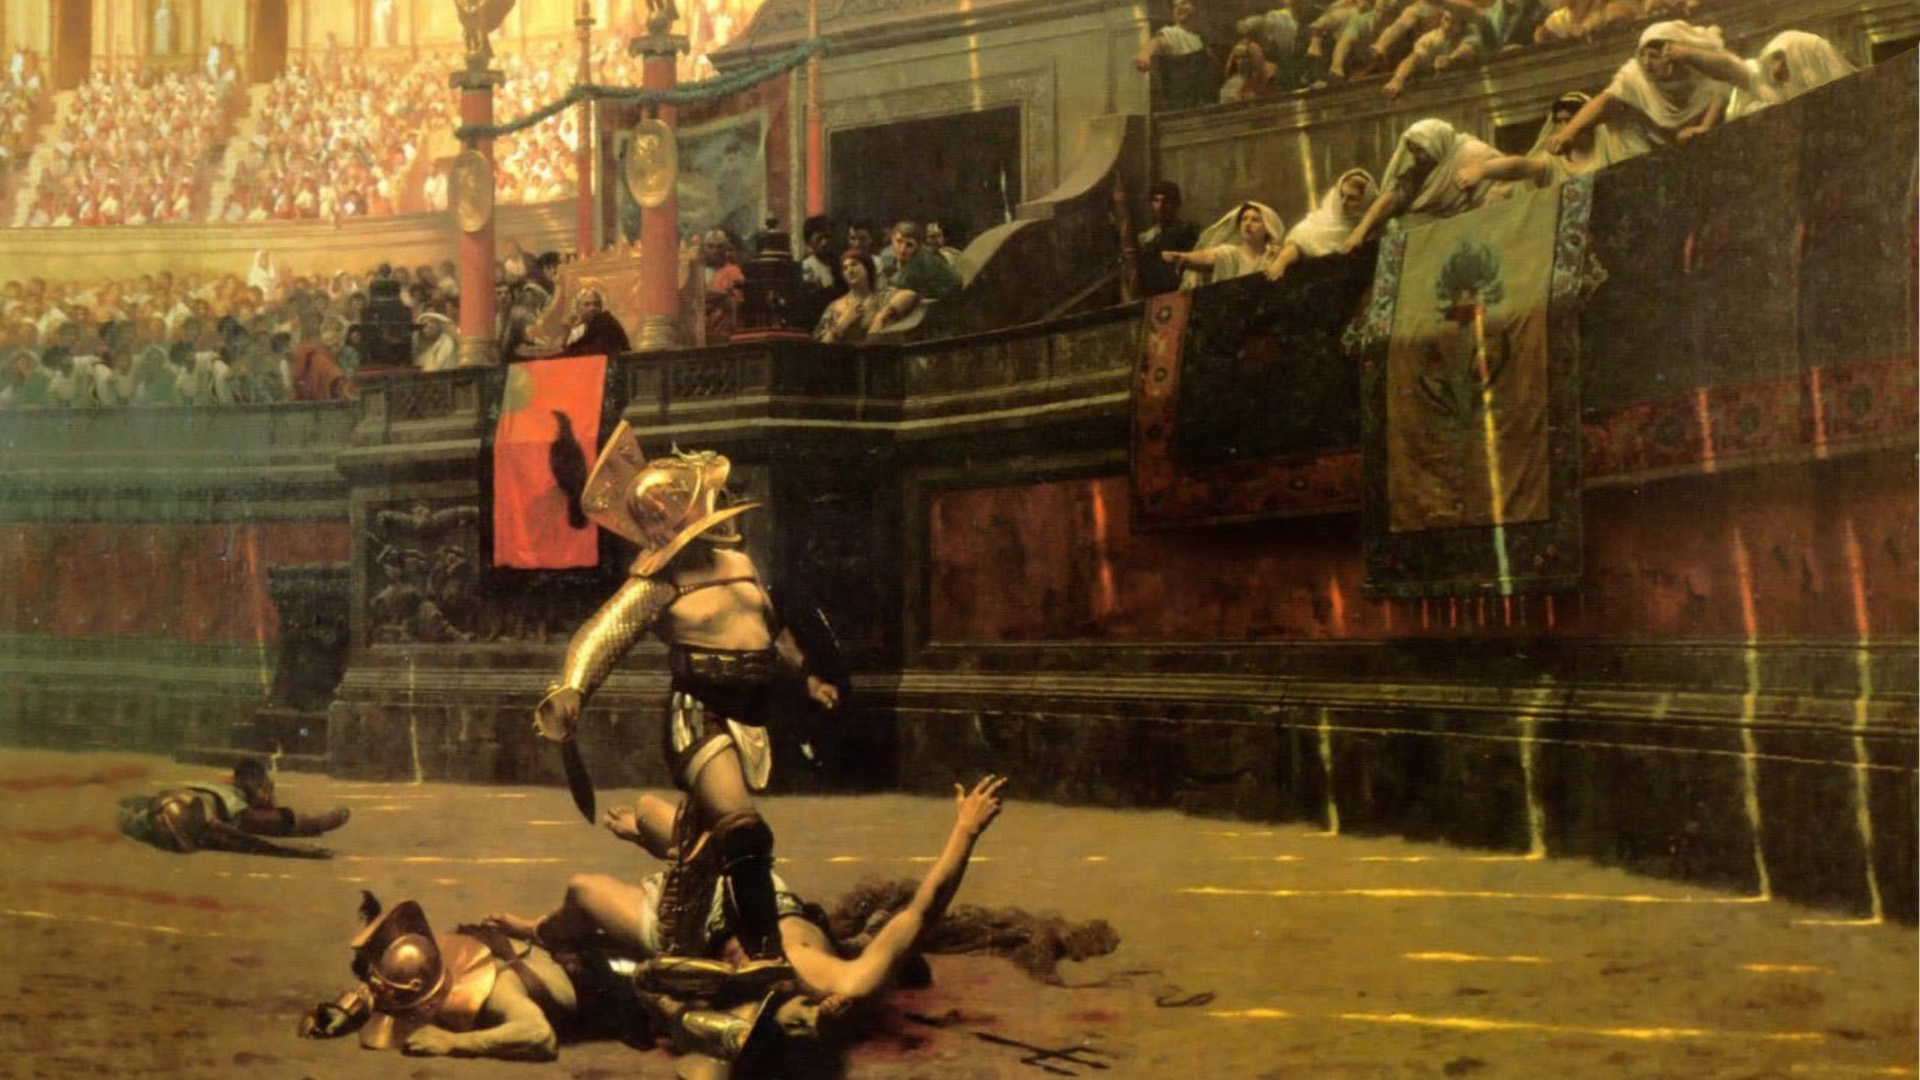 Artistic - Painting  Rome Arena Gladiator Artistic Wallpaper